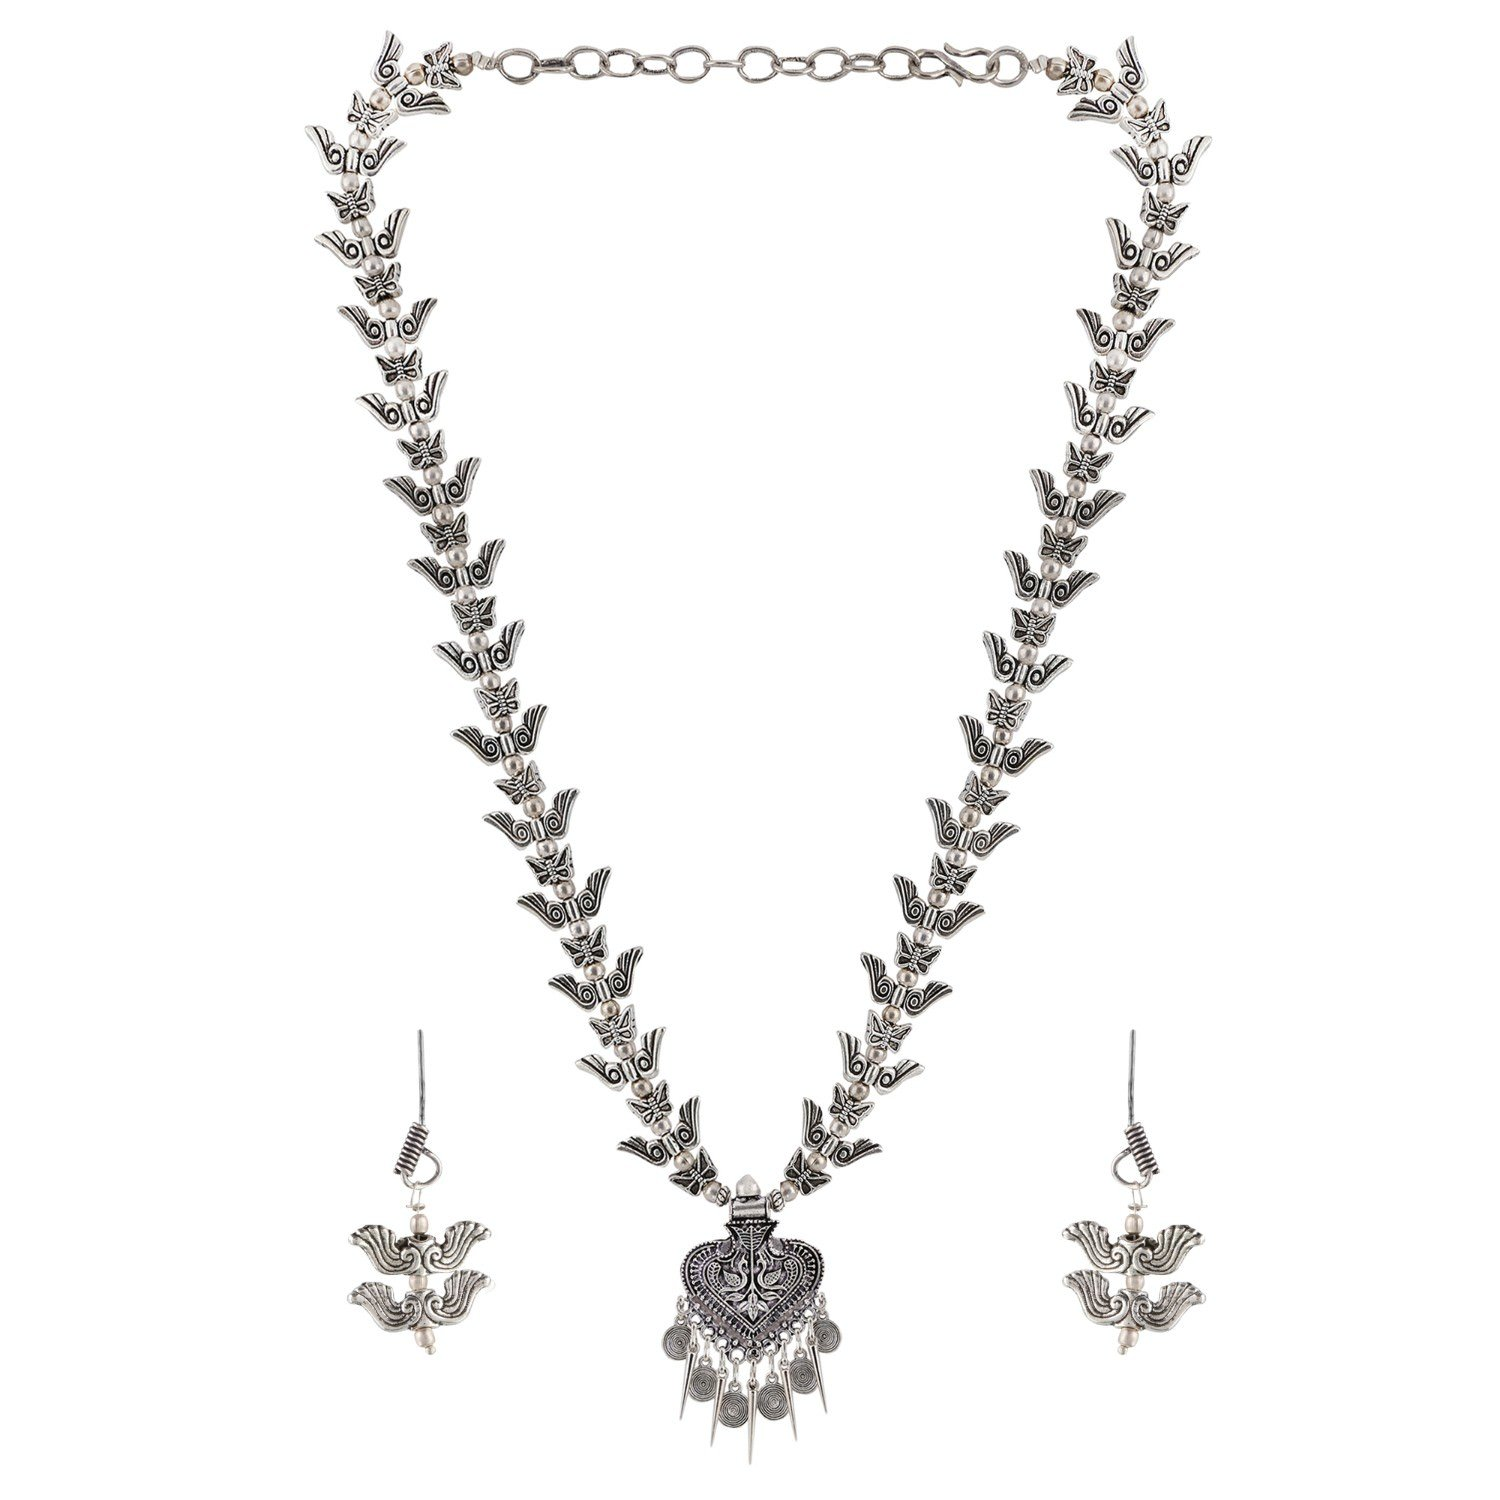 Efulgenz Boho Vintage Antique Ethnic Gypsy Tribal Indian Oxidized Silver Beaded Floral Statement Necklace Earrings Jewelry Set